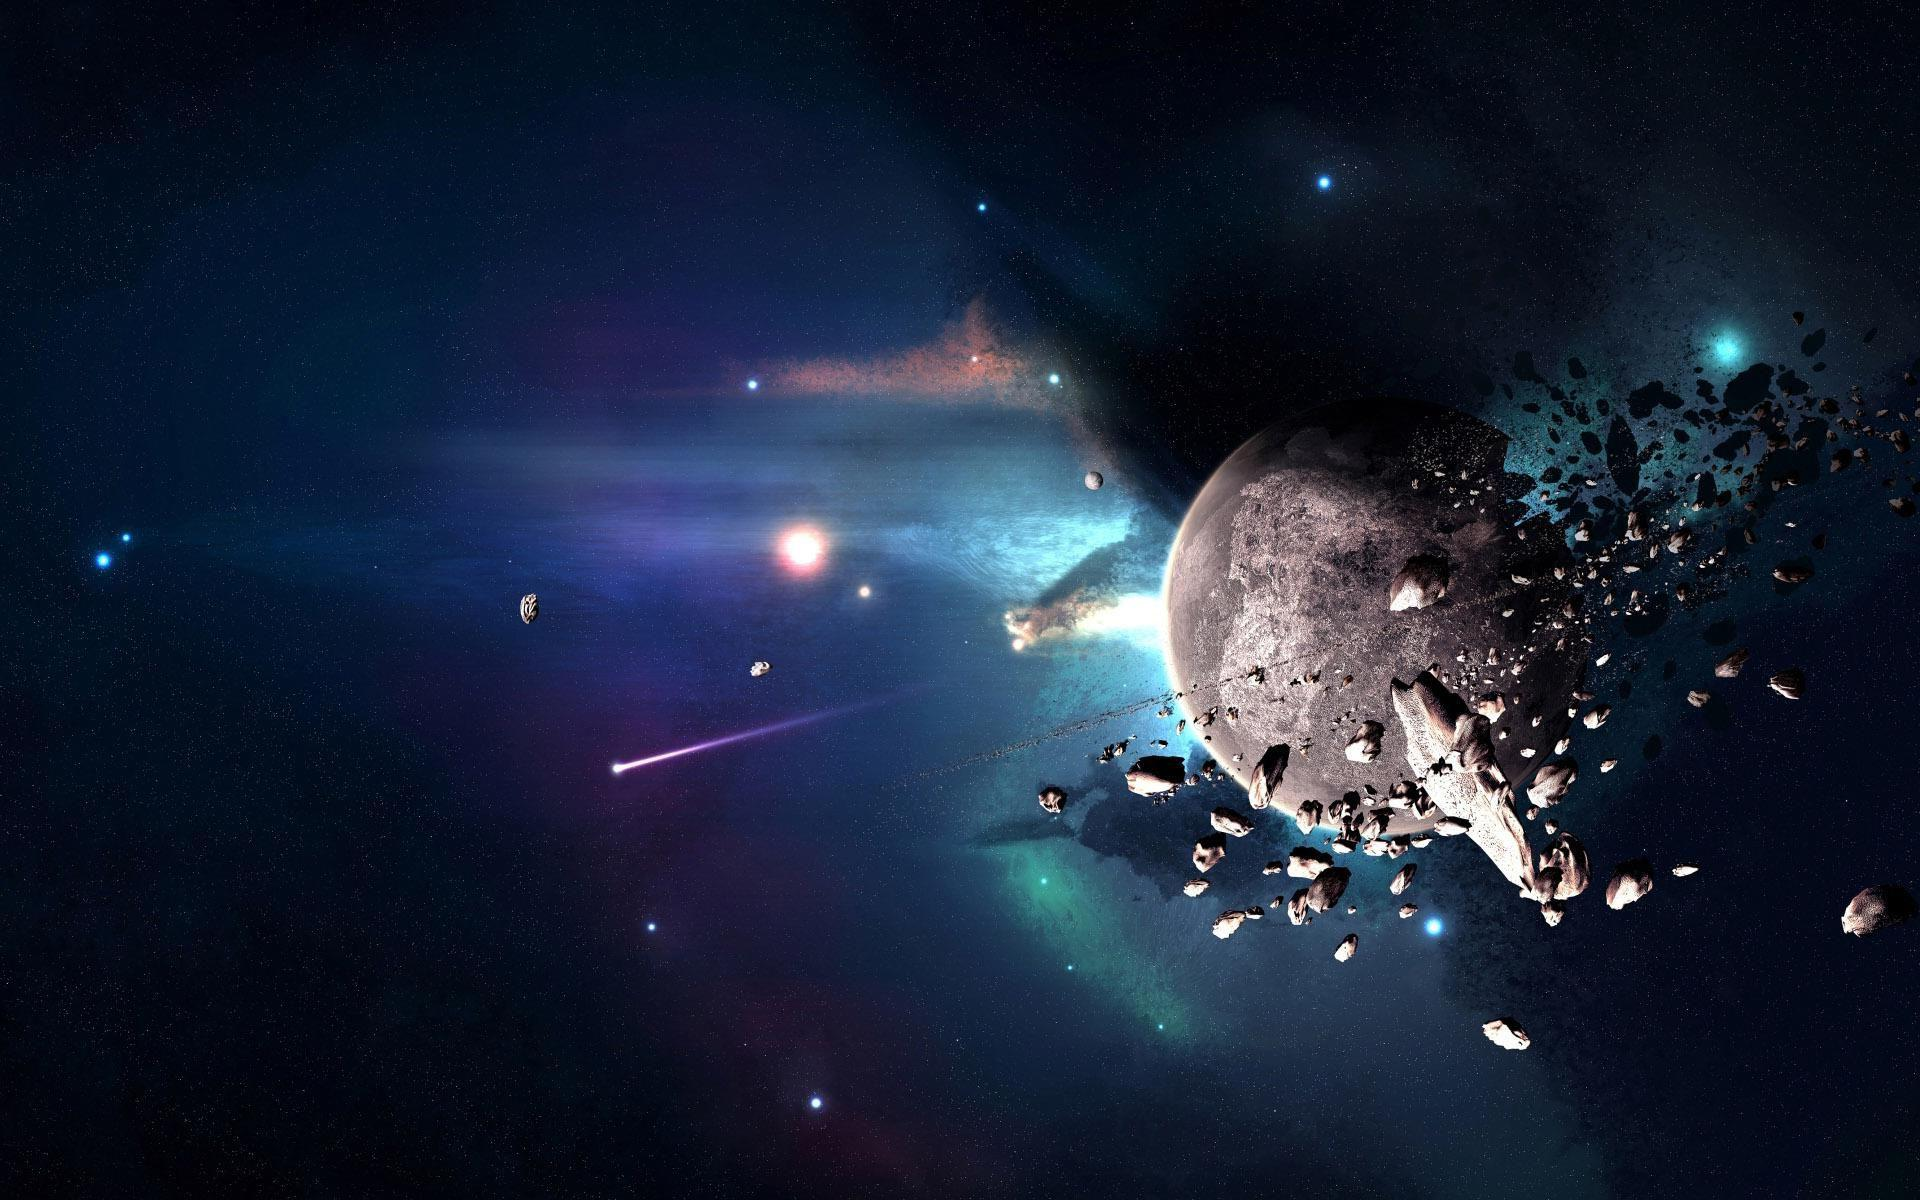 Meteorites circling the planet wallpapers